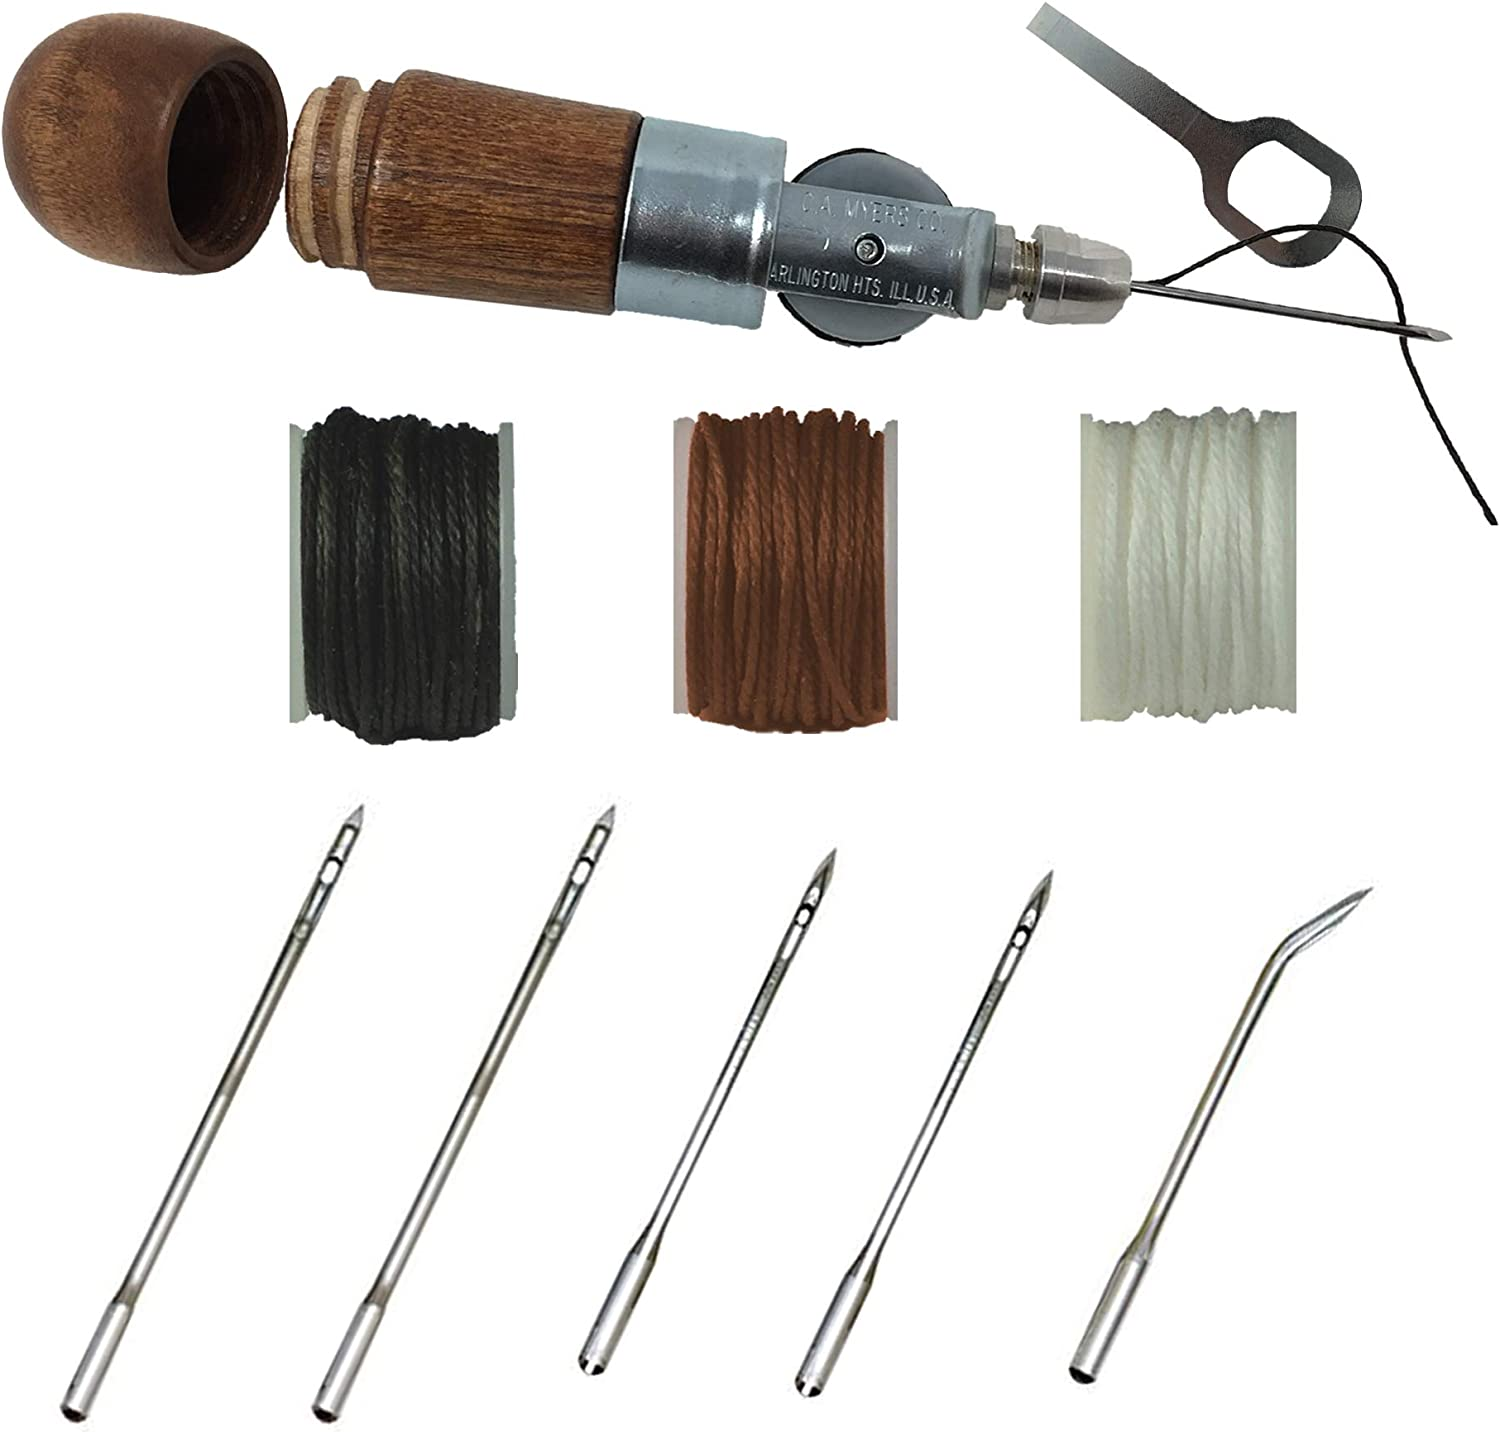 Max 76% OFF Professional Leathercraft Accessories Sewing Too Stitching Max 79% OFF Awl